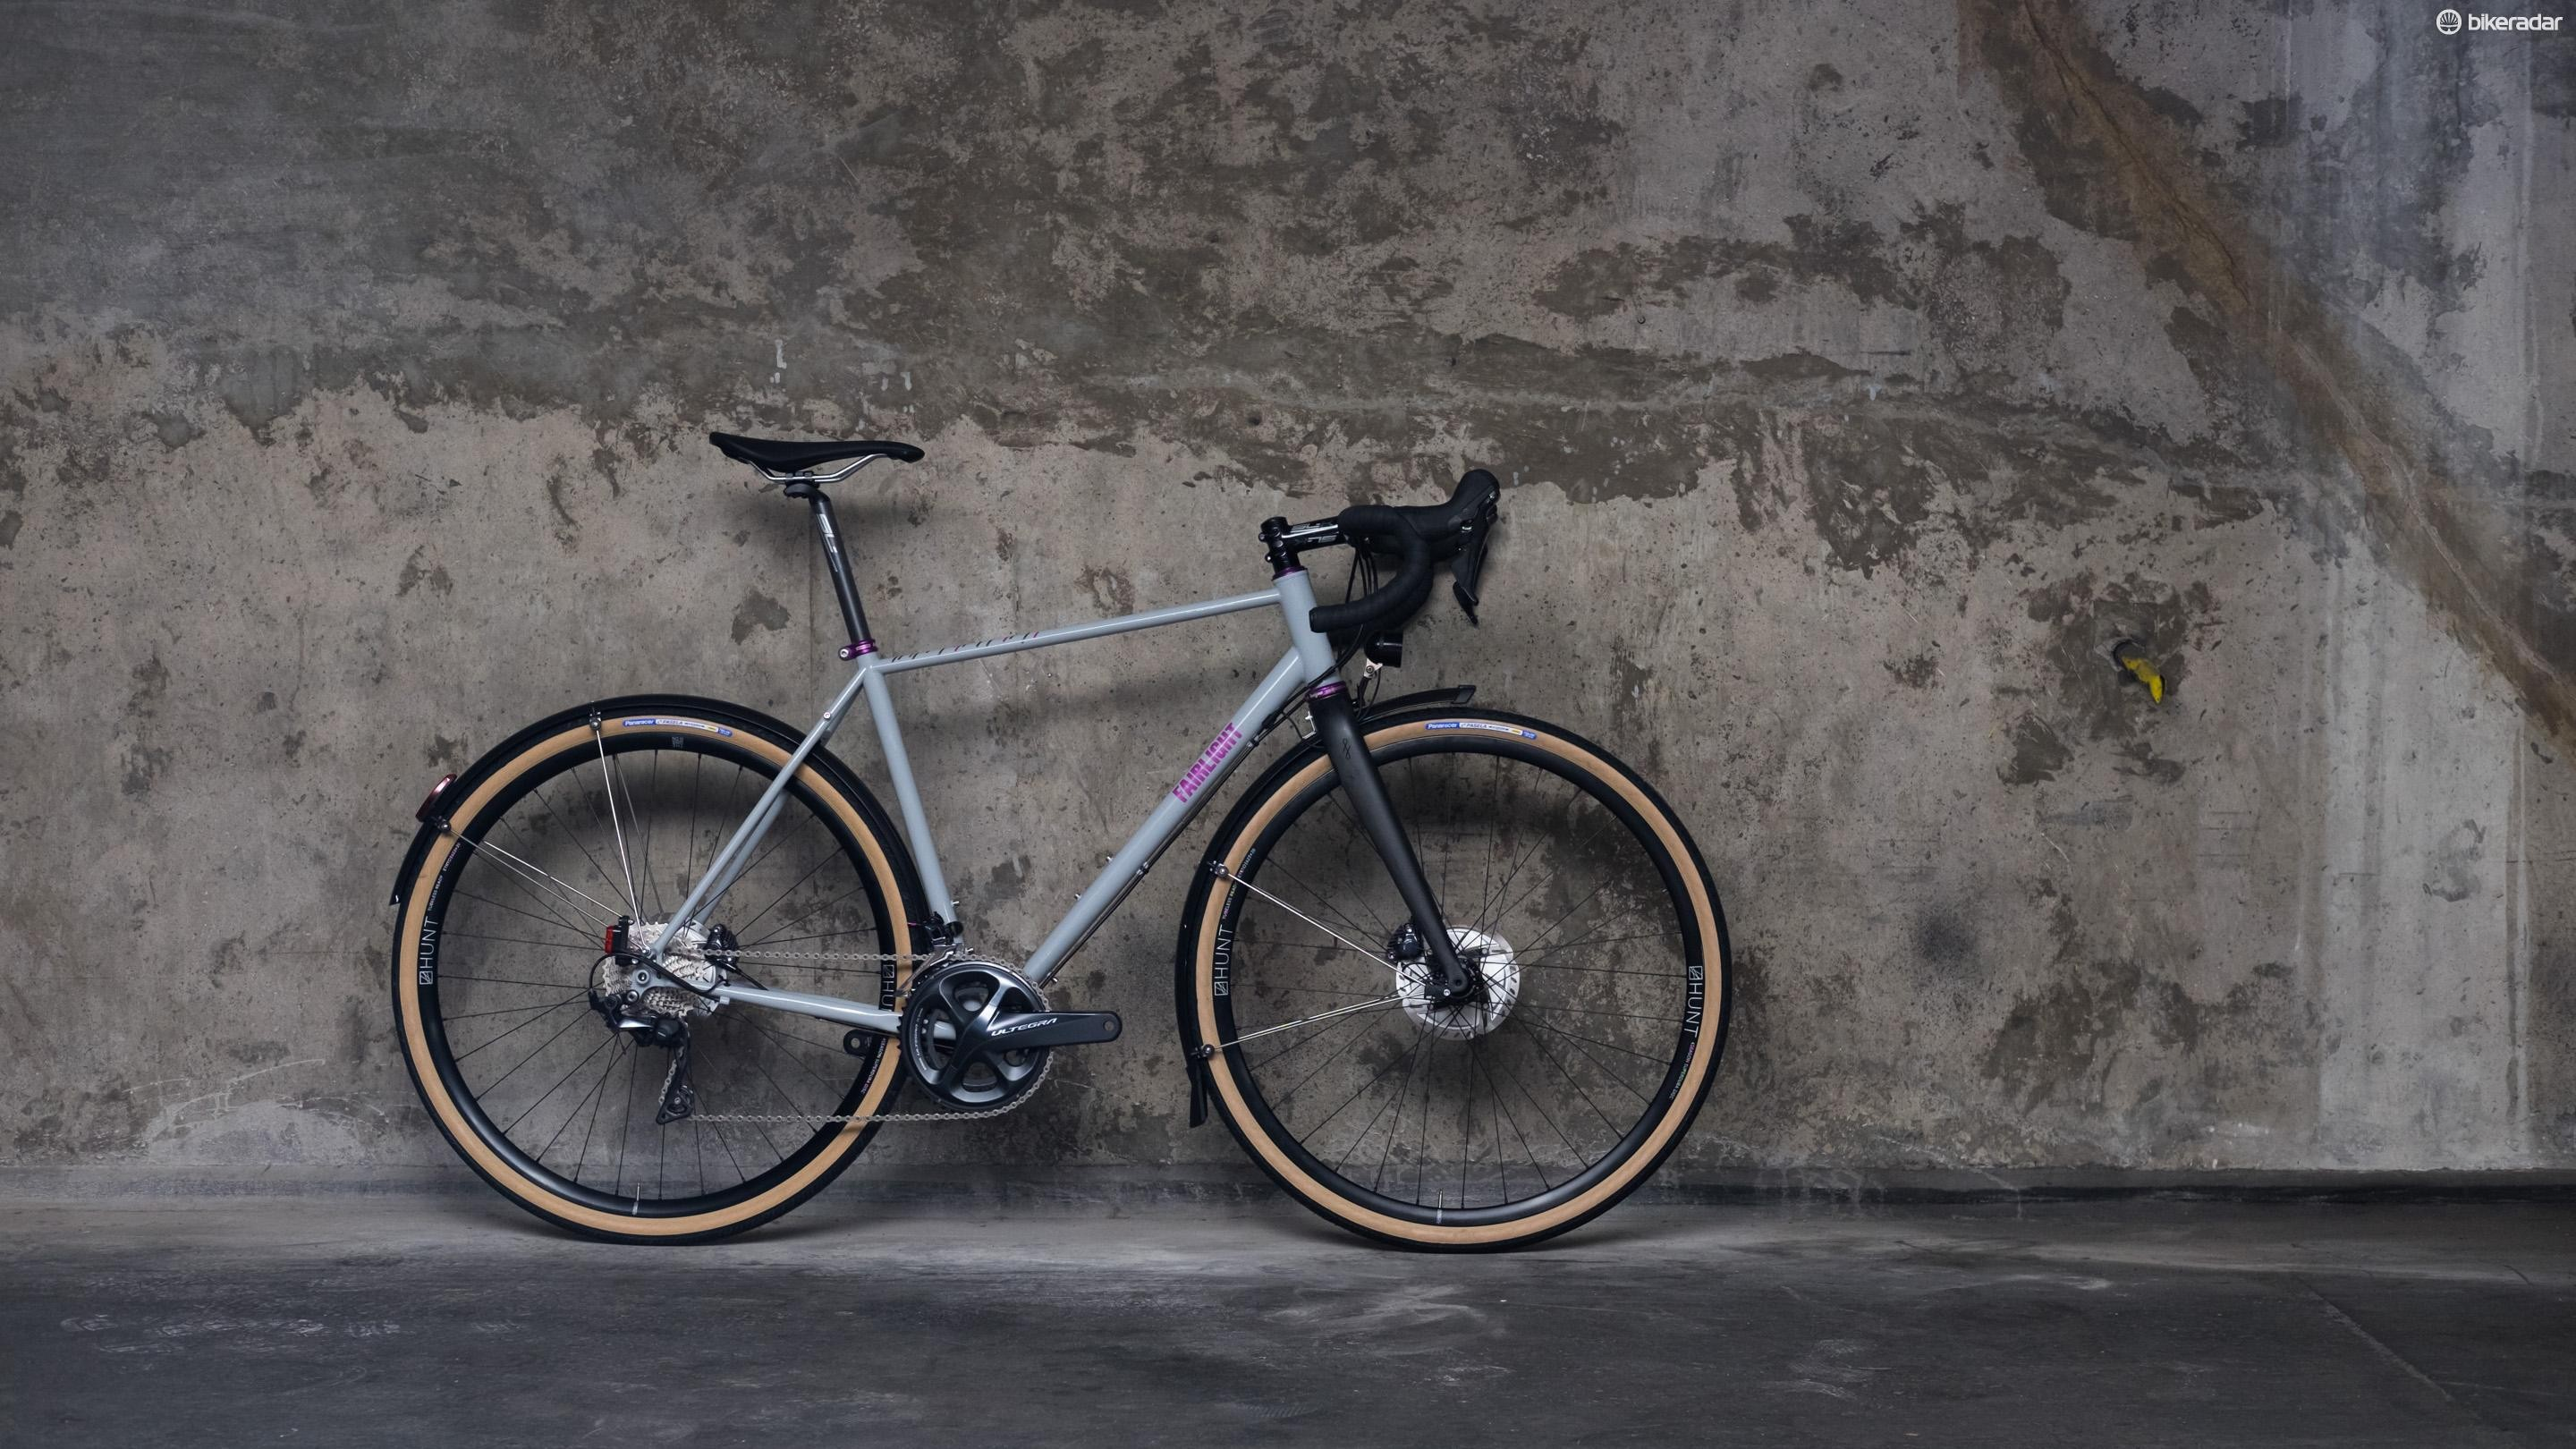 We'll be testing this bike in a variety of set ups, from all-purpose road machine to gravel monster